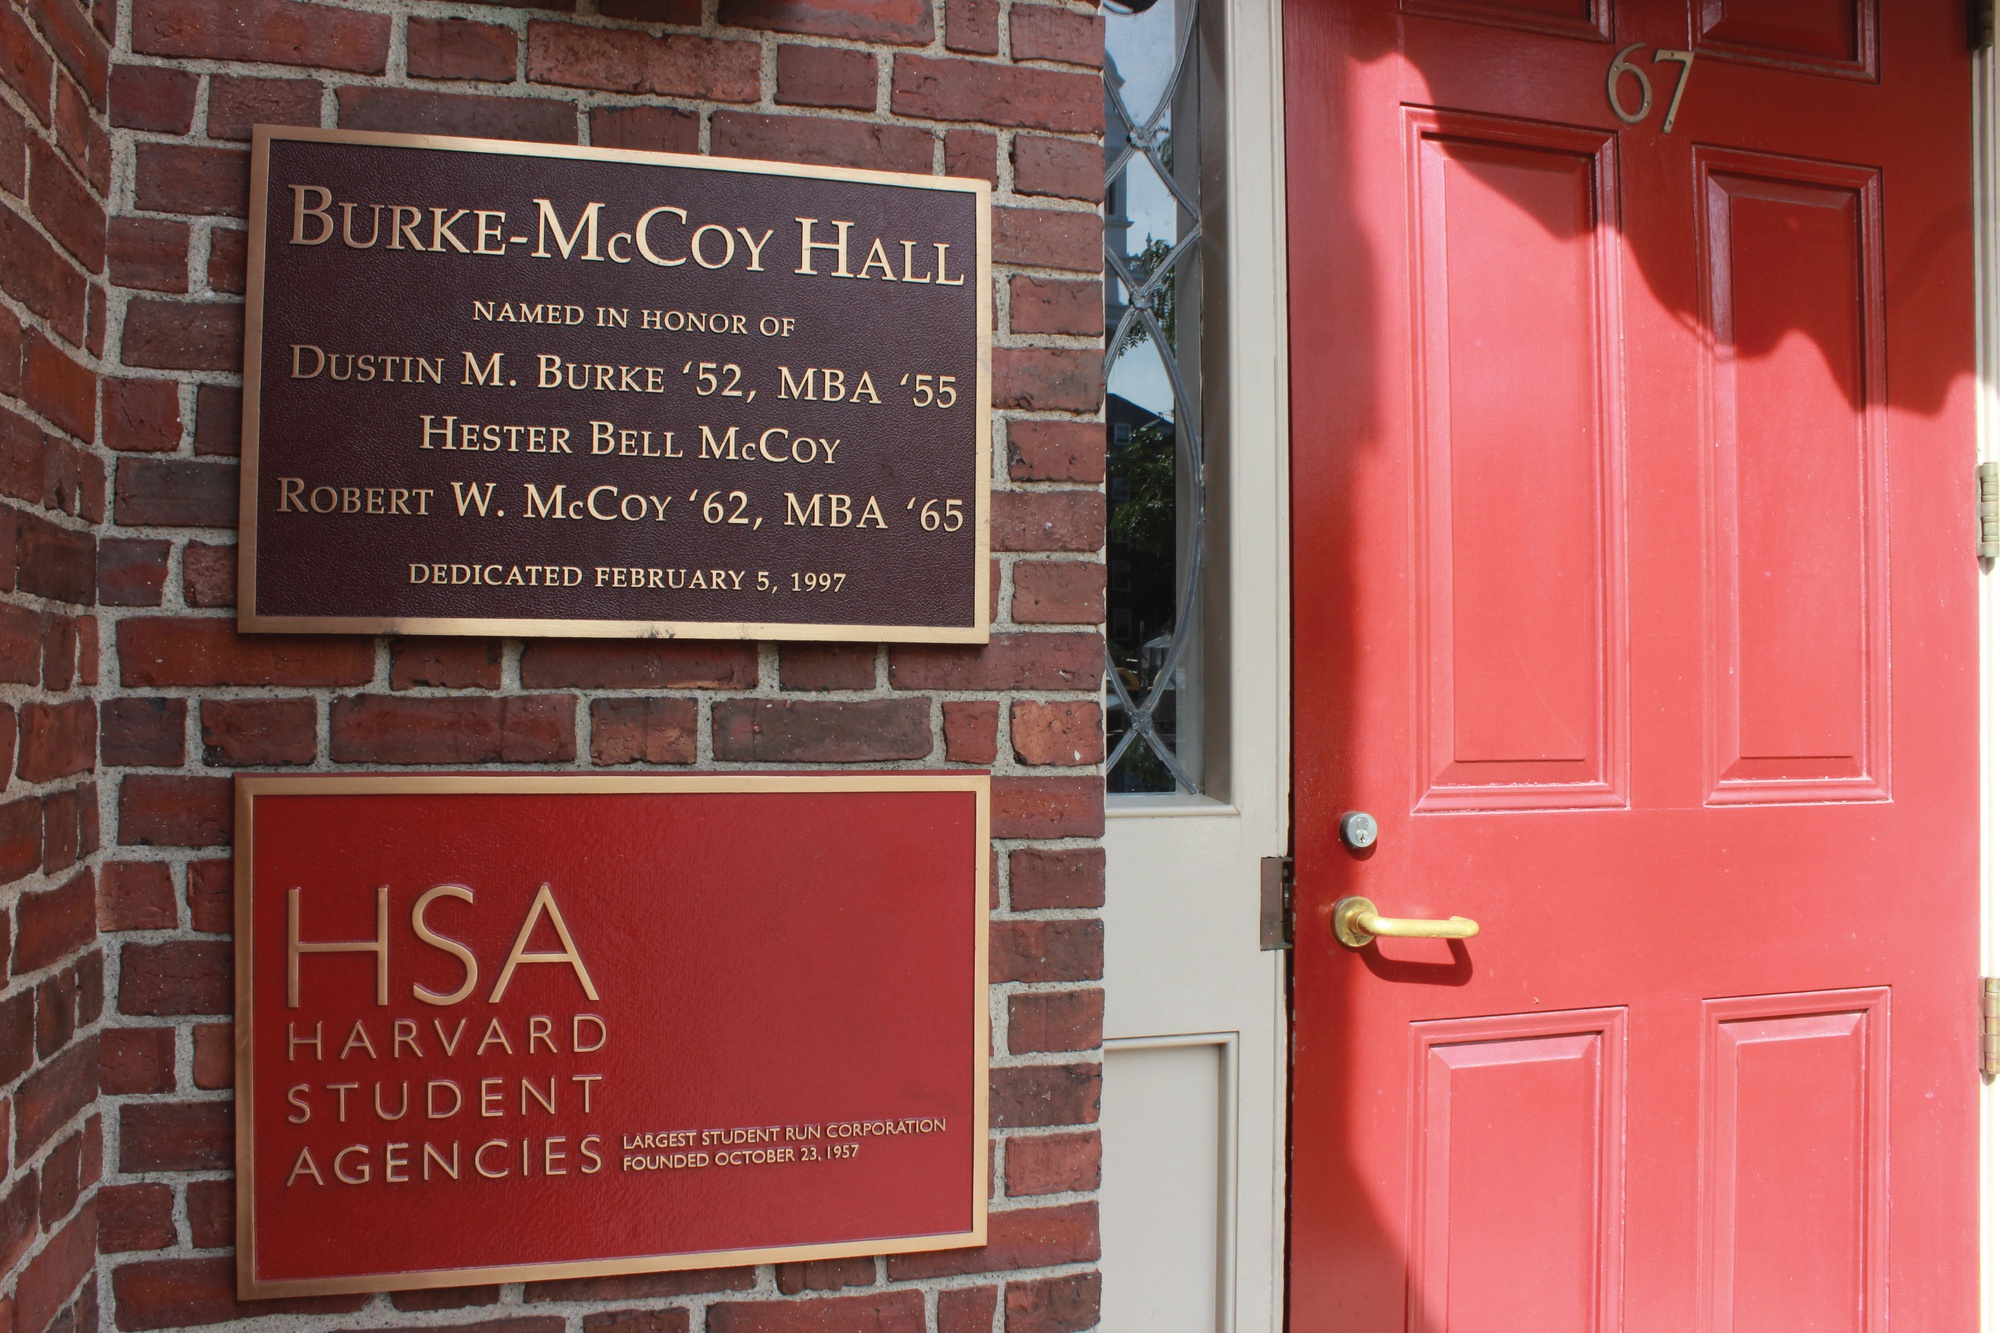 HSA, located at 67 Mount Auburn Street, elects Angelina R. Massa '18 as its next president.